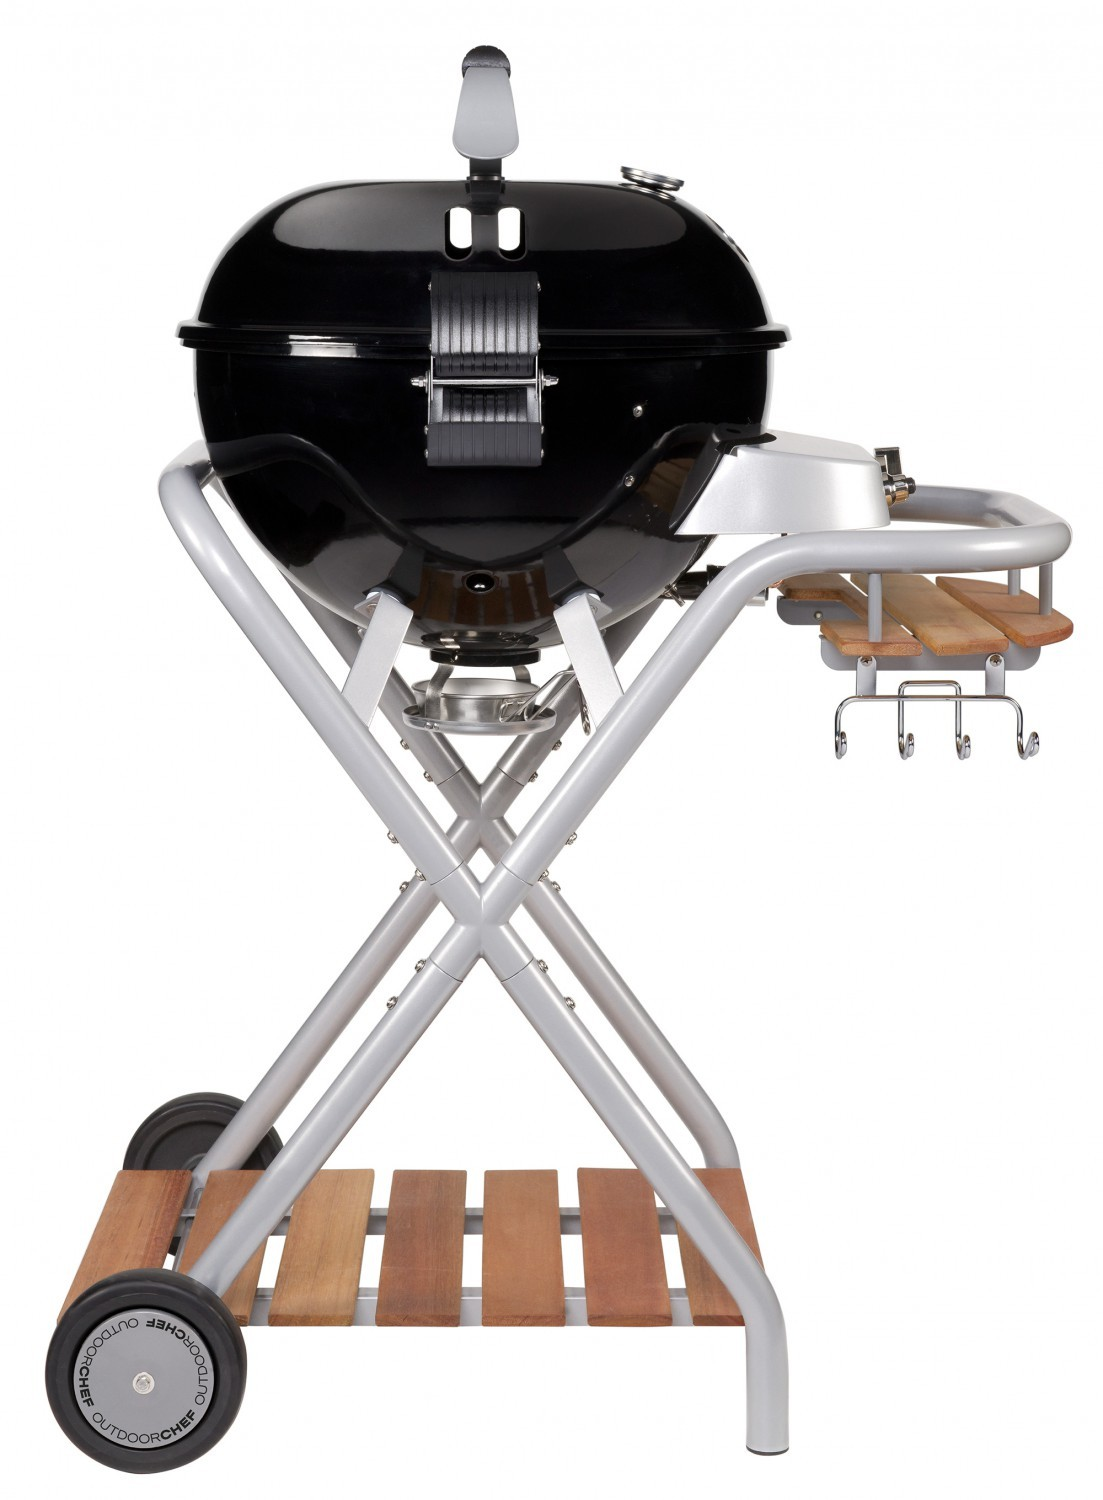 outdoorchef gas kugelgrill ambri 480 g schwarz set mit gussrost m kaufen. Black Bedroom Furniture Sets. Home Design Ideas